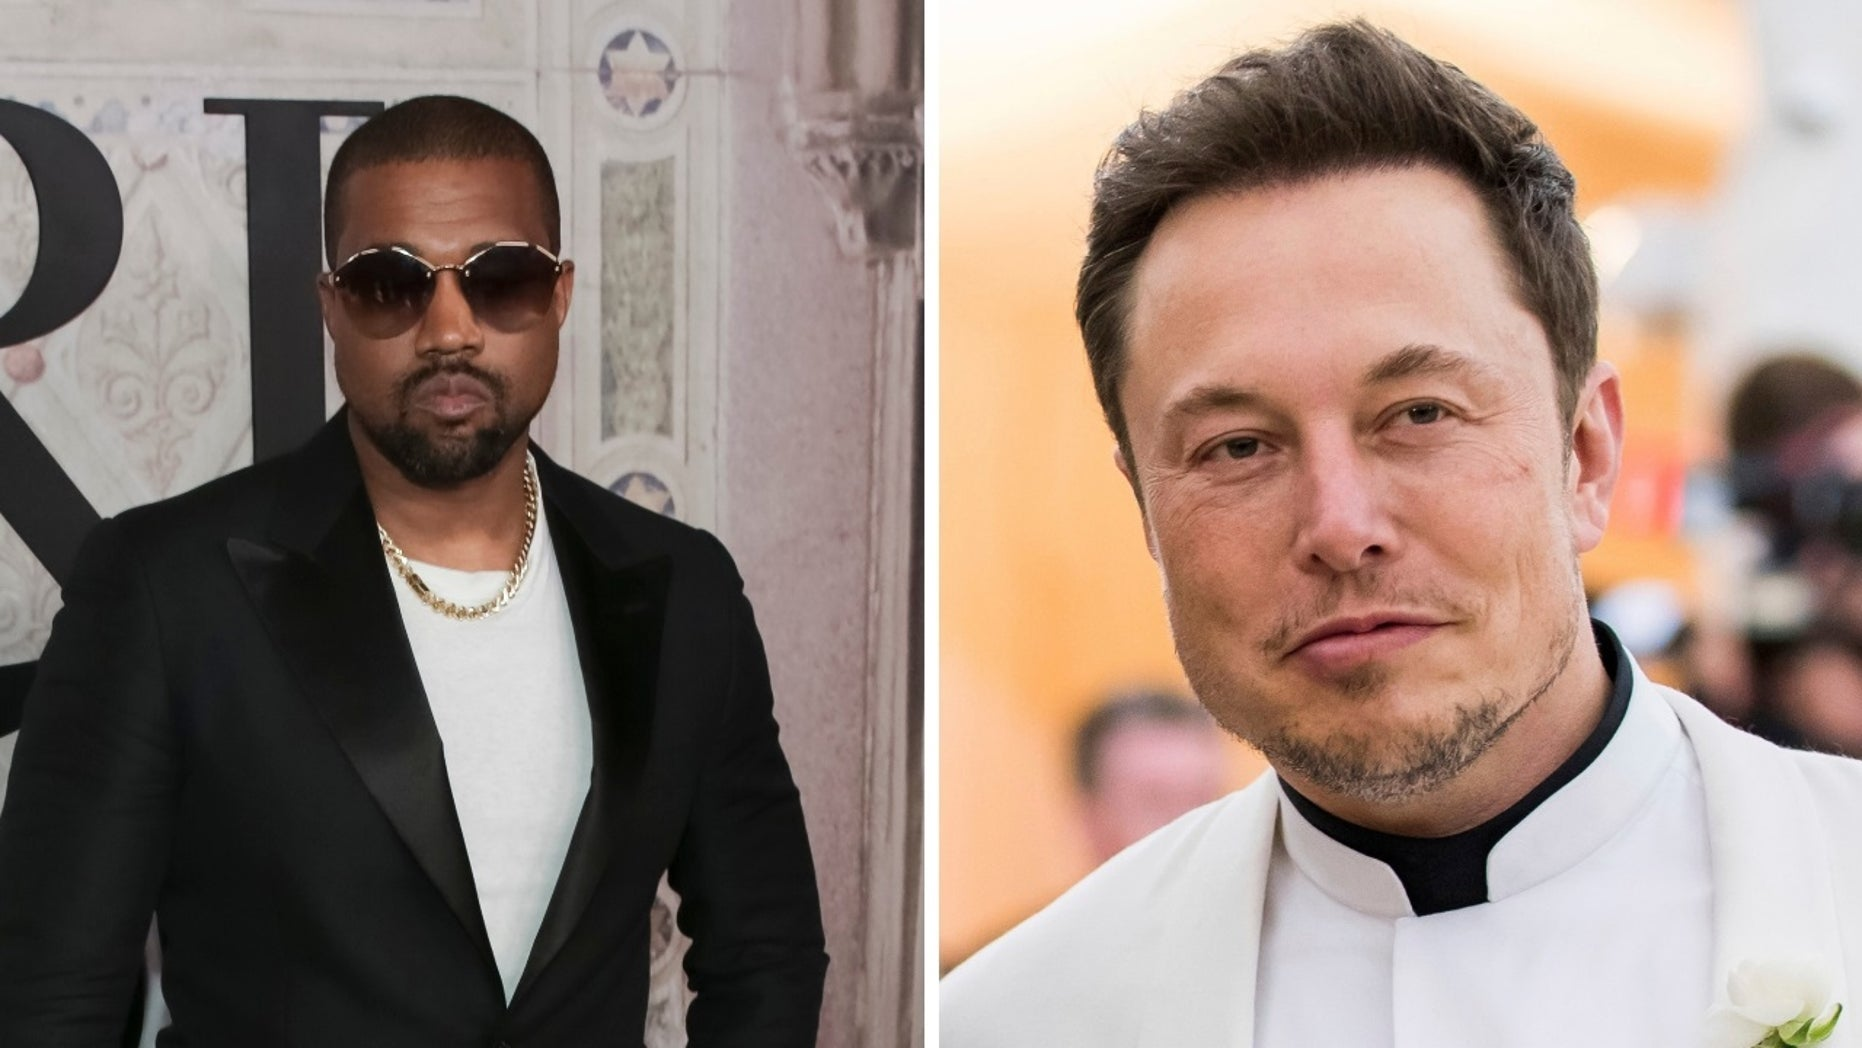 Kanye West defended Elon Musk in a dramatic speech.